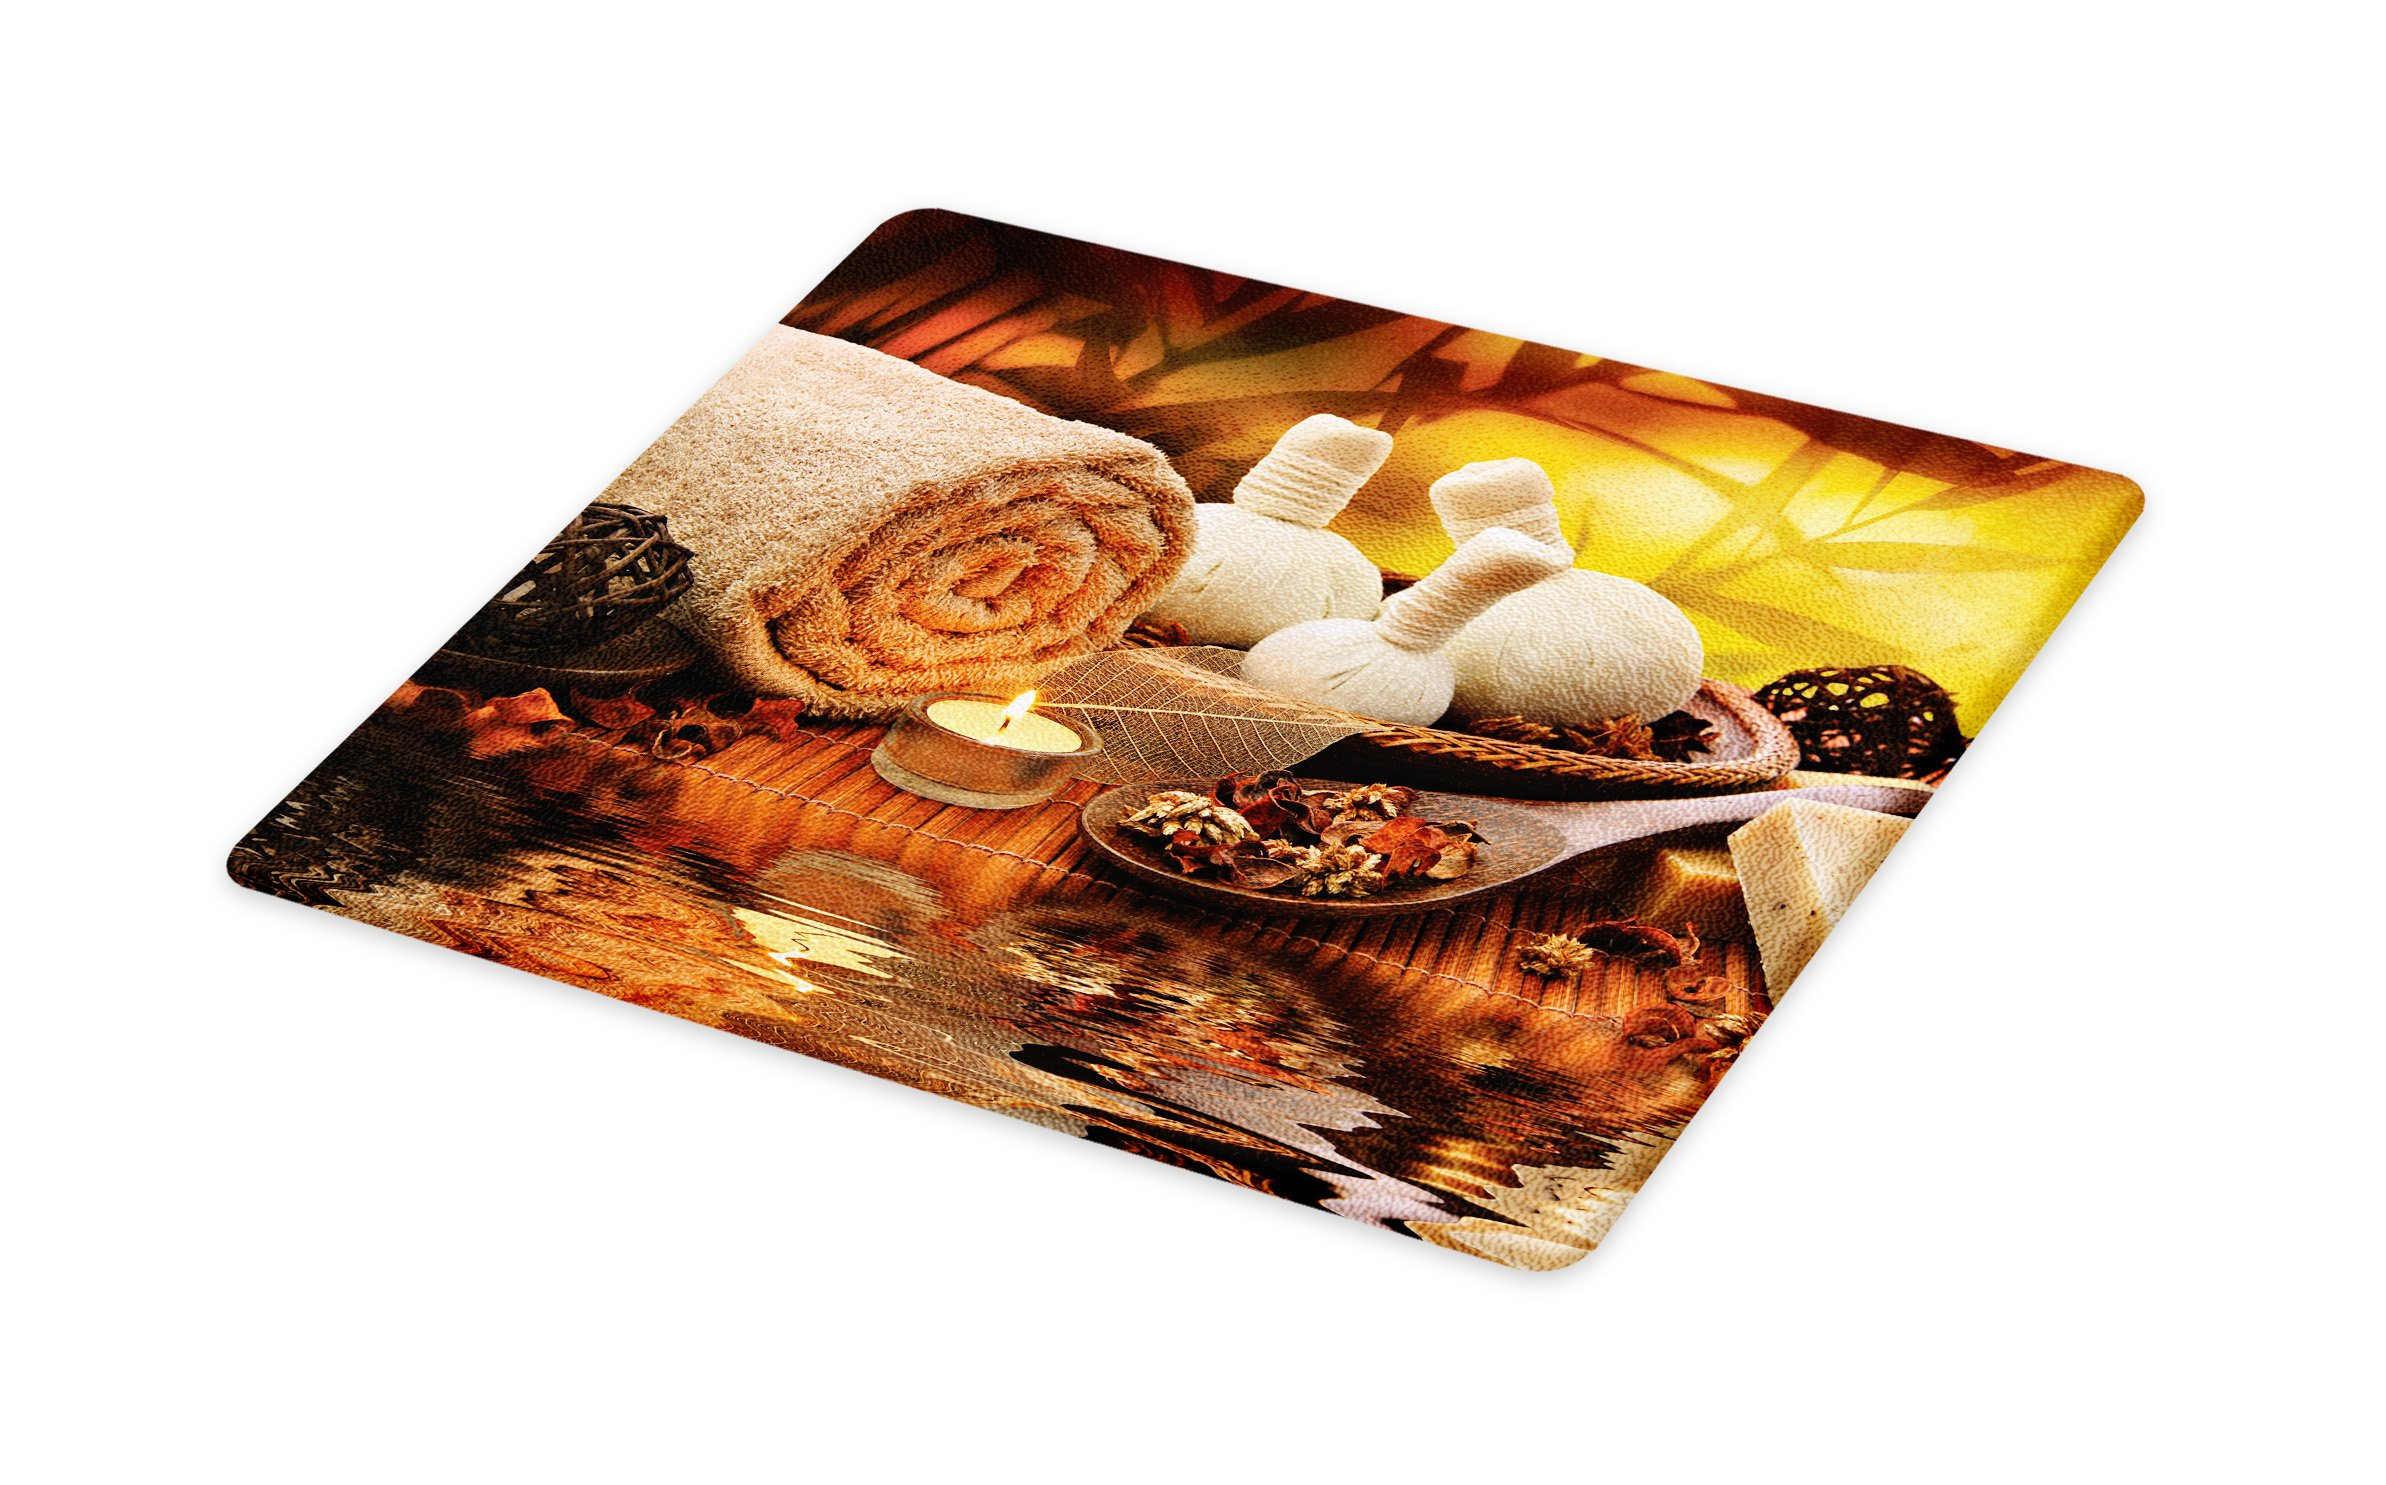 Lunarable Spa Cutting Board, Outdoor Spa Massage Setting at Sunset with Candlelight Reflections Culture Theme, Decorative Tempered Glass Cutting and Serving Board, Small Size, Orange Mustard